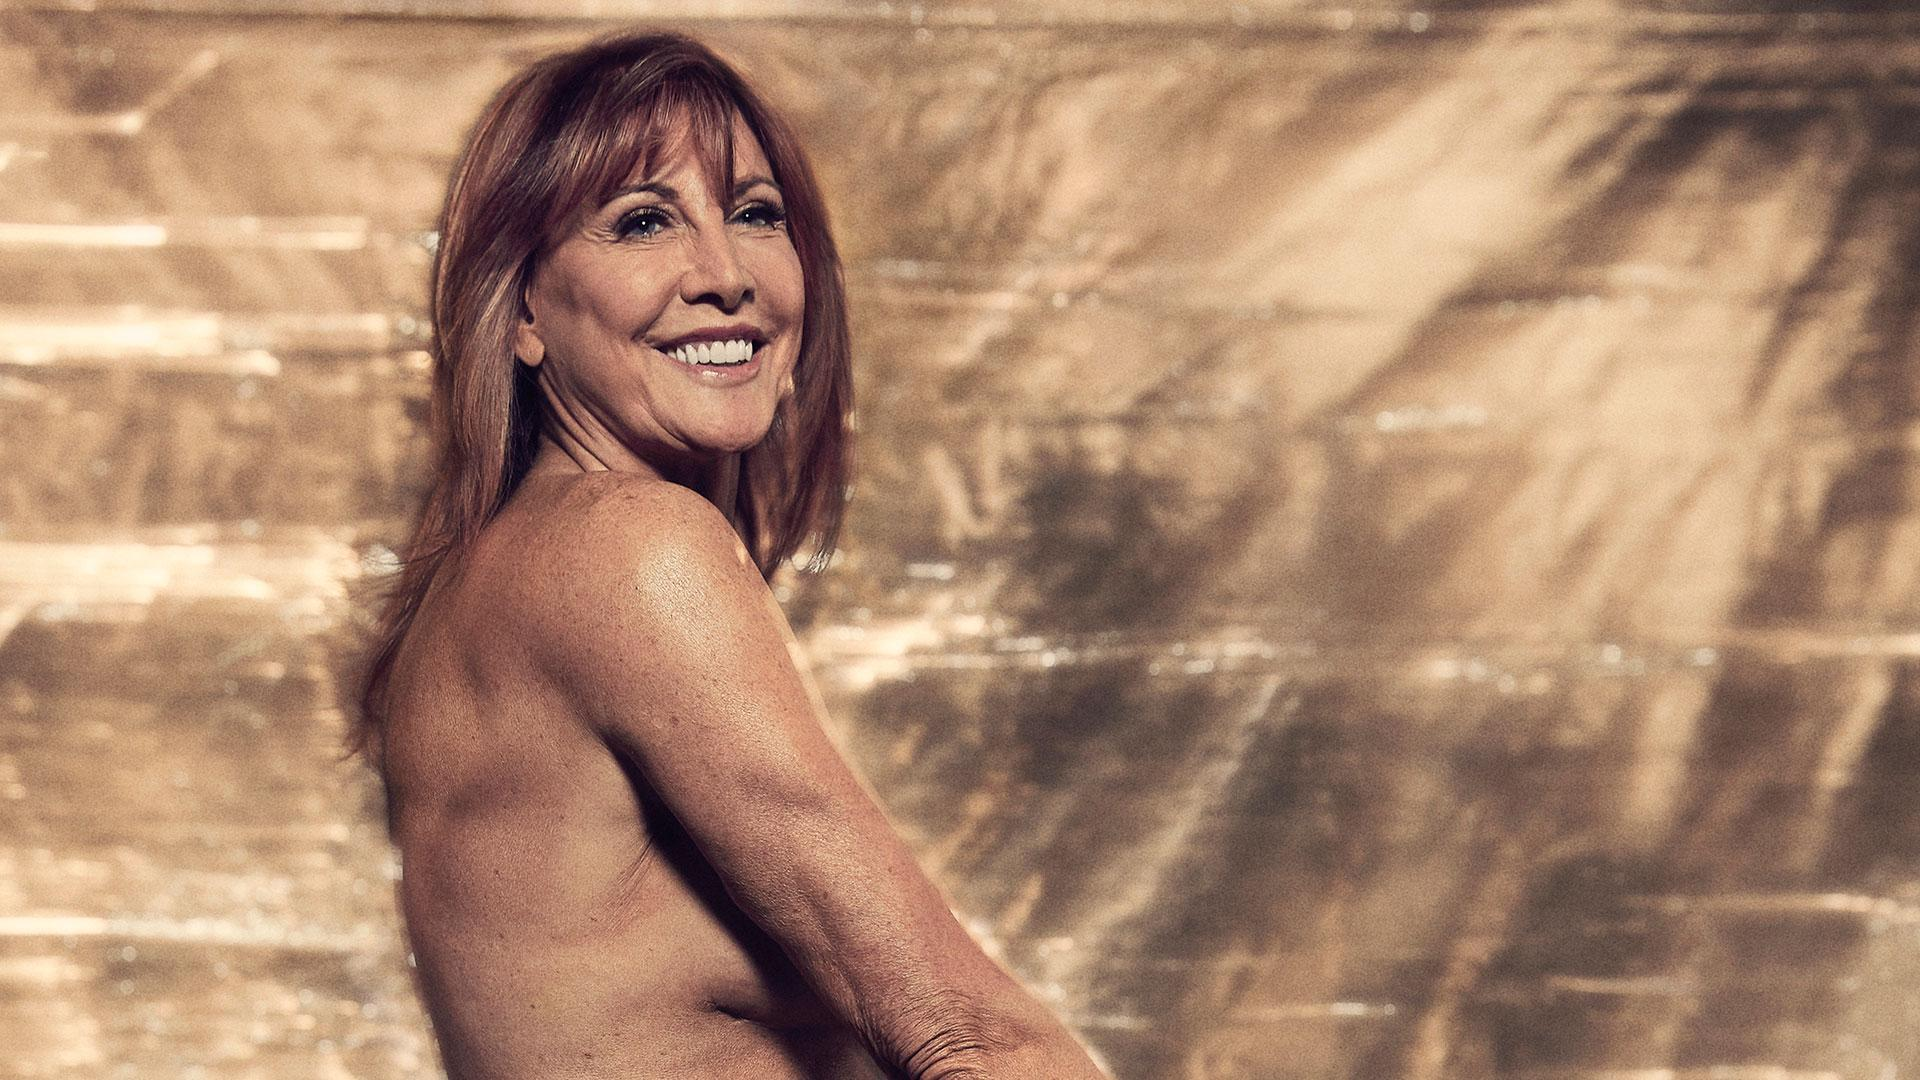 Behind the scenes of Nancy Lieberman's Body Issue shoot